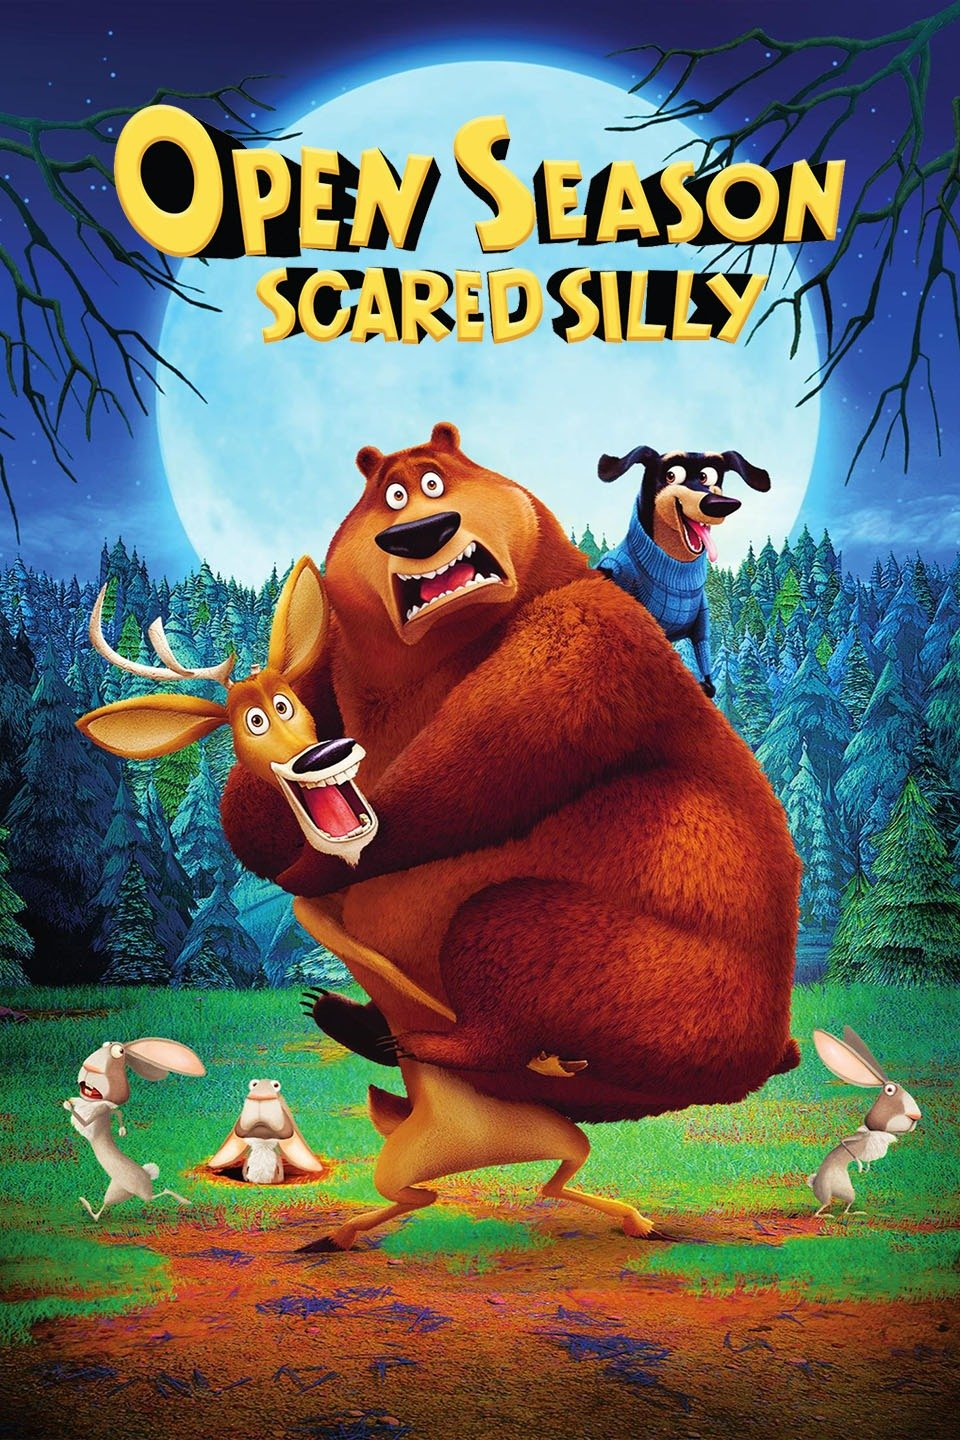 Open Season: Scared Silly-Open Season: Scared Silly